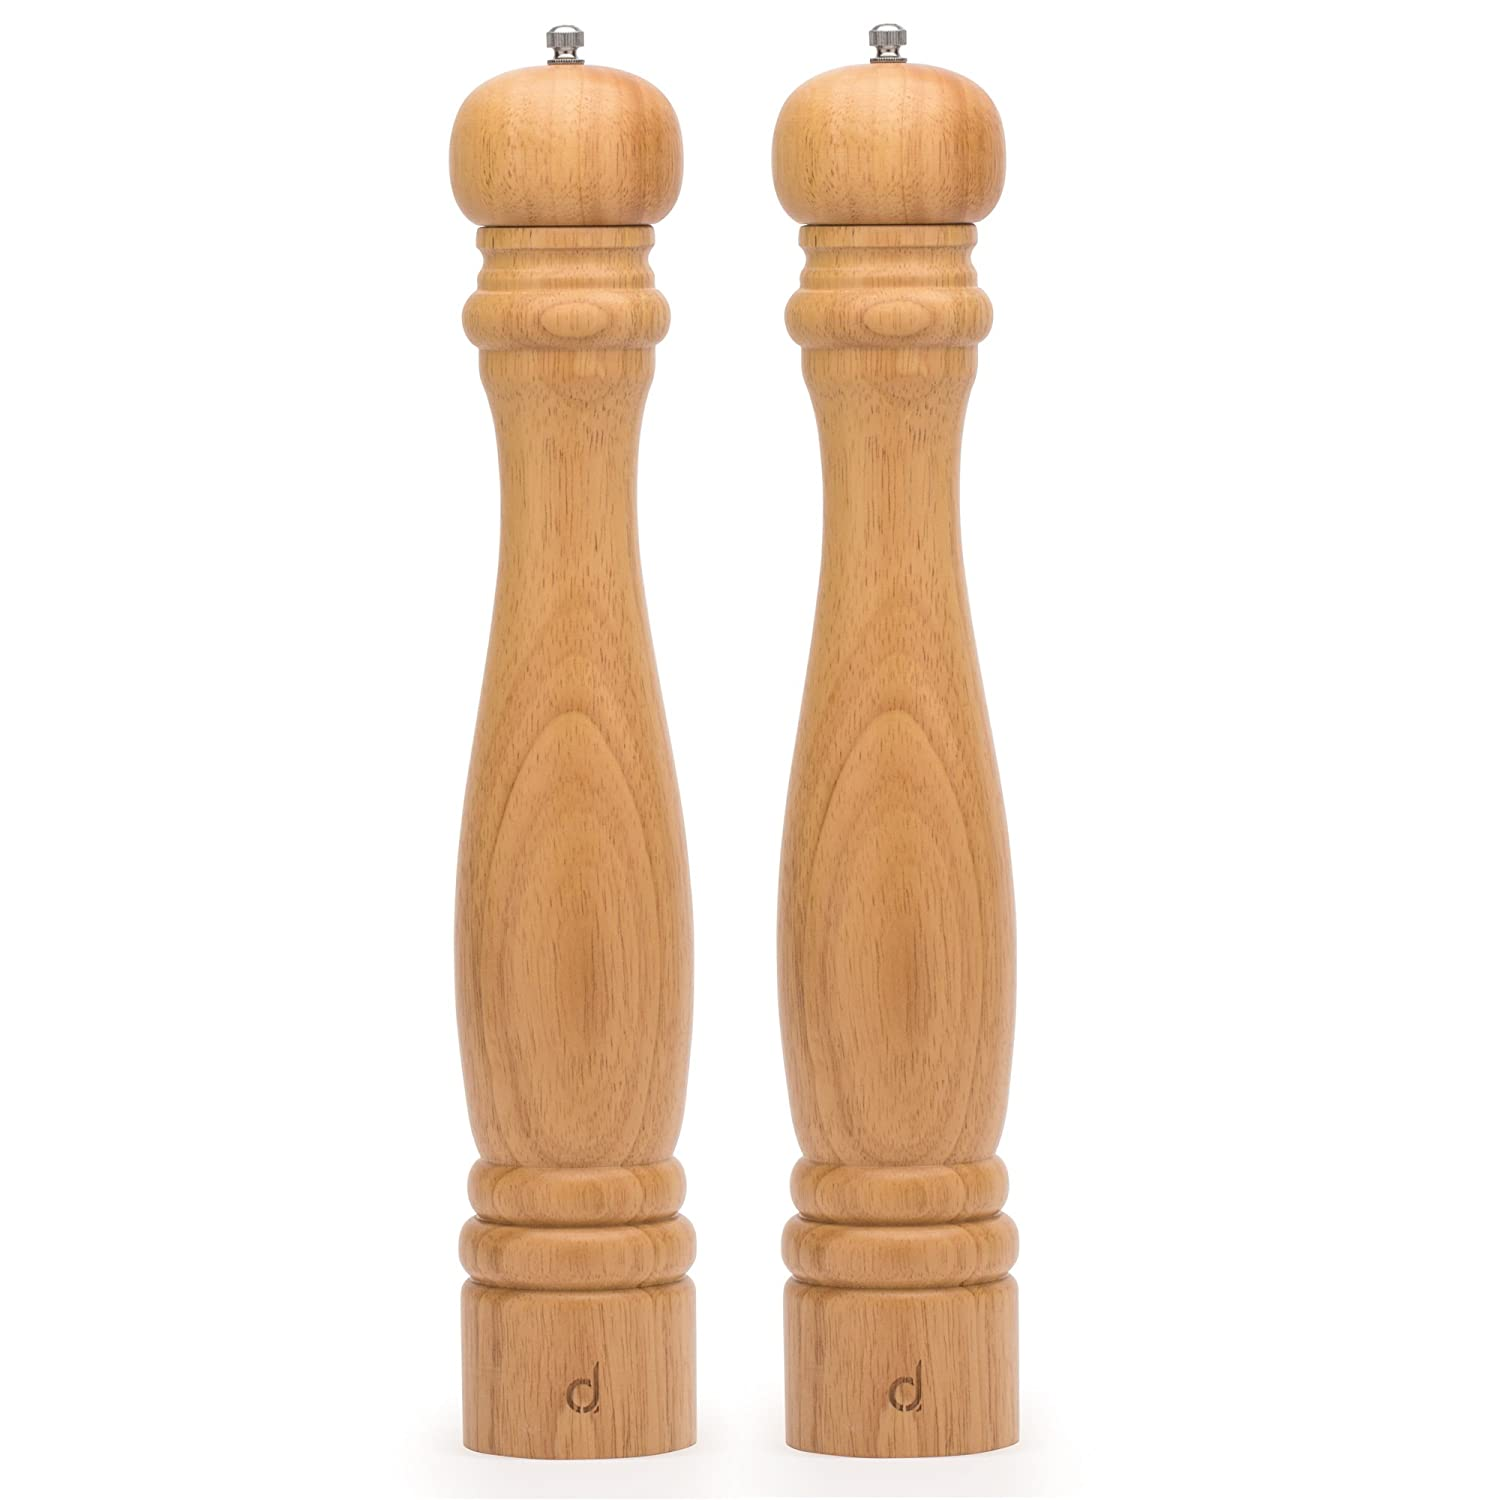 Andrew James Wooden Salt and Pepper Mill Set | Large Grande 41cm Tall Refillable Grinders | Rustic Finish